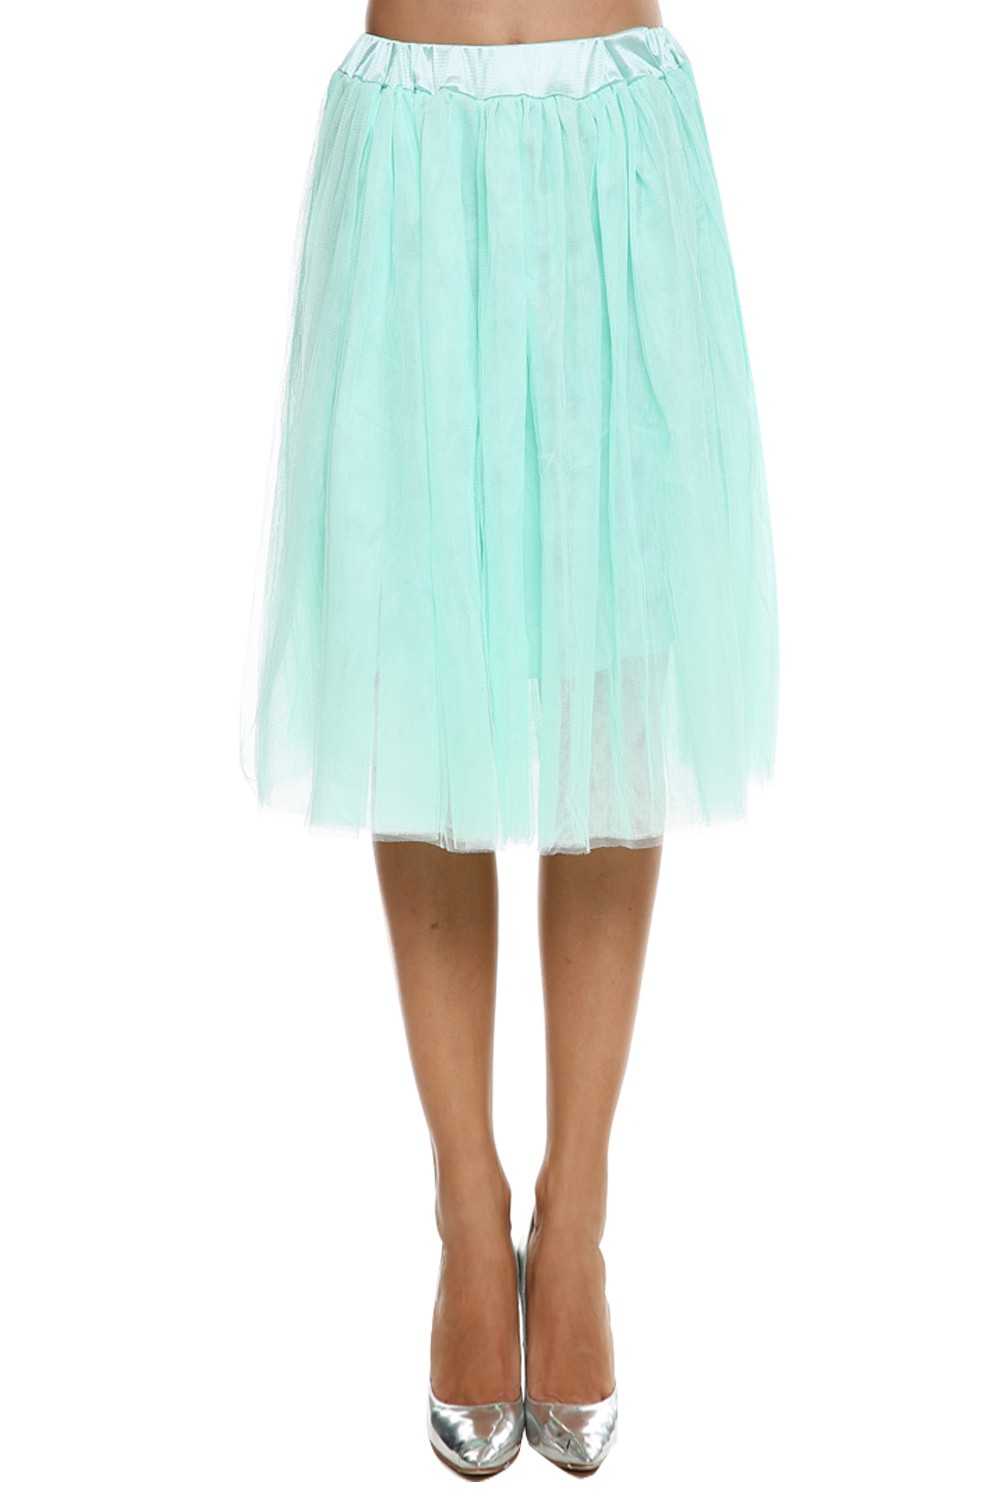 New Women Fashion Princess Fairy Style 2 layers Tulle Dress Bouffant Skirt 5 Colors